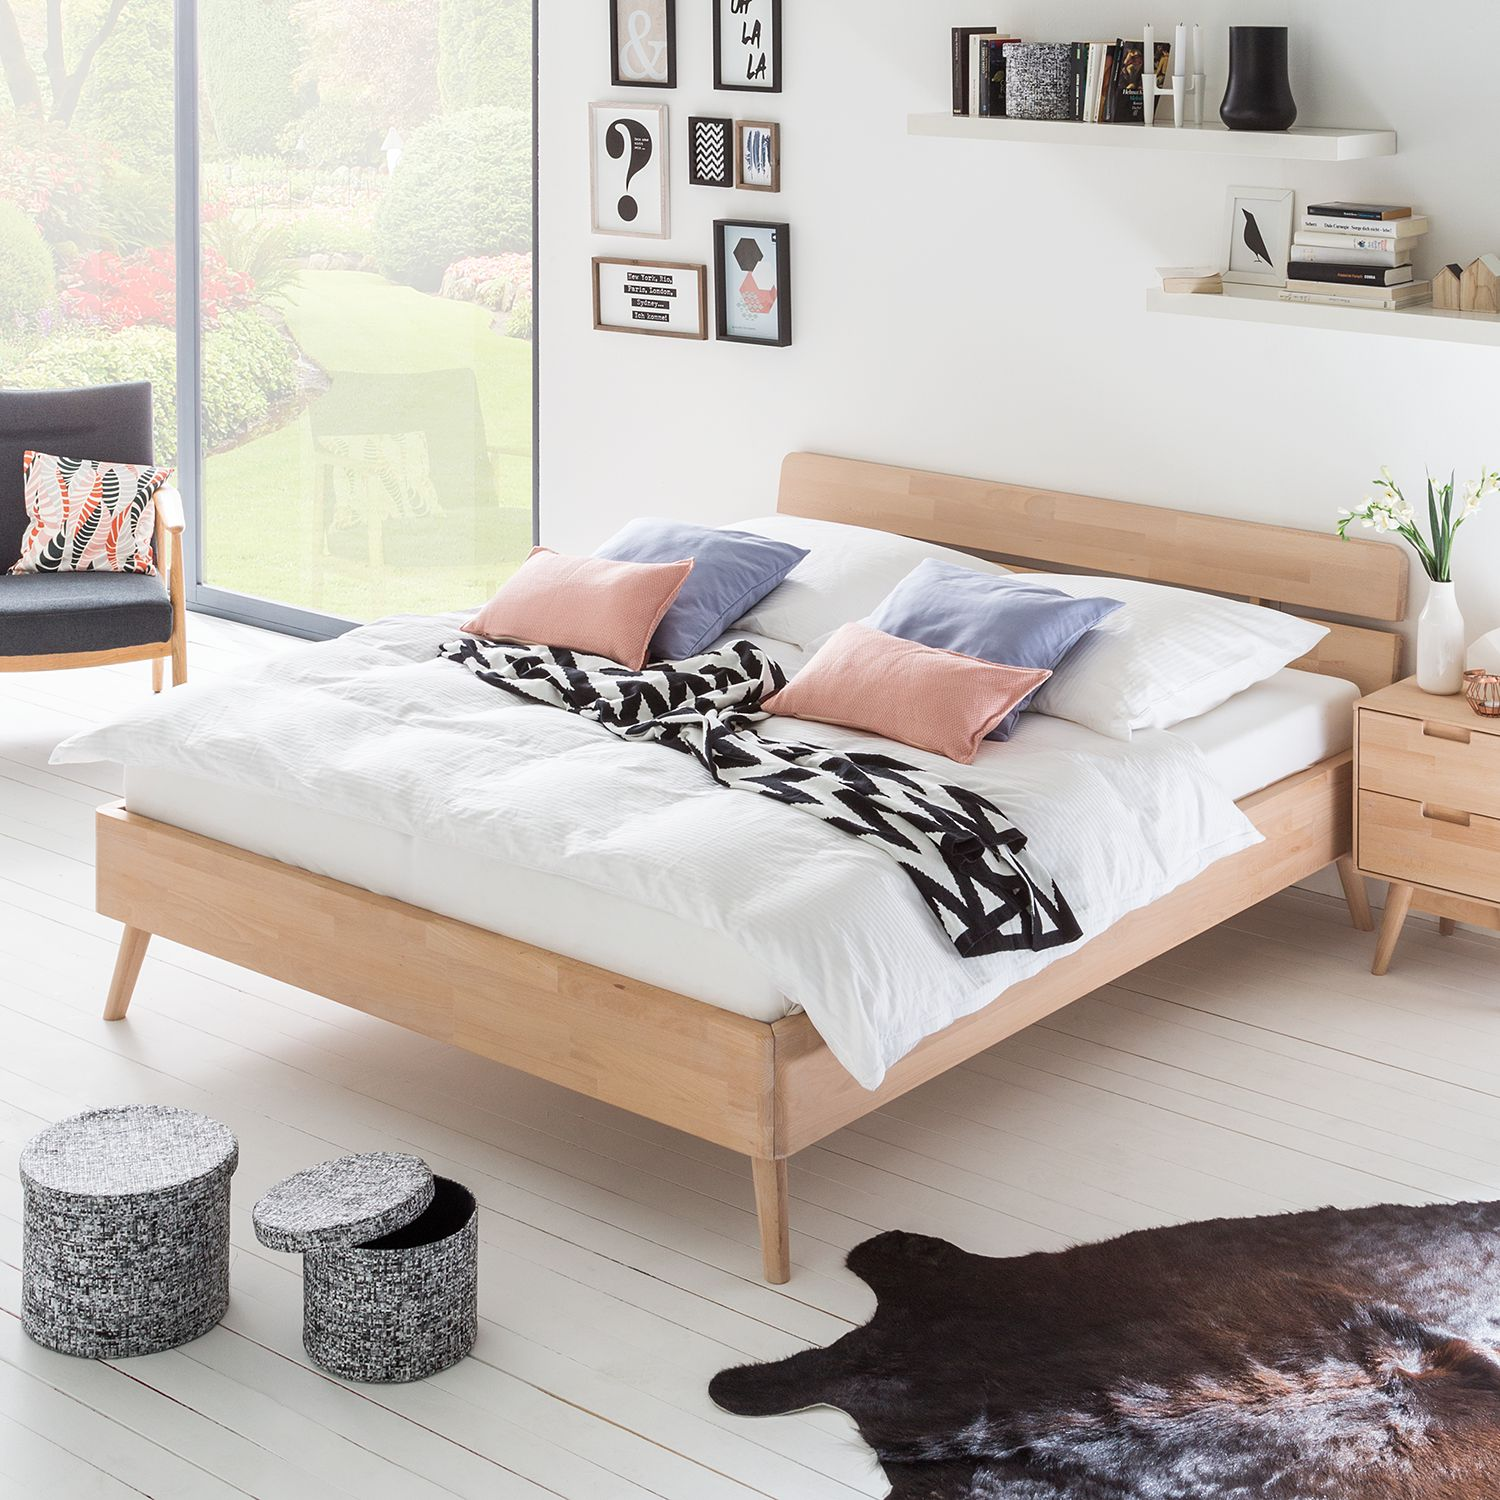 Full Size of Bett Massivholz 140x200 200x200 120x200 Massiv 180x200 220 X Clinique Even Better Make Up Luxus Meise Betten Wickelbrett Für Grau Eiche Kleinkind Tojo V Bett Bett Massiv